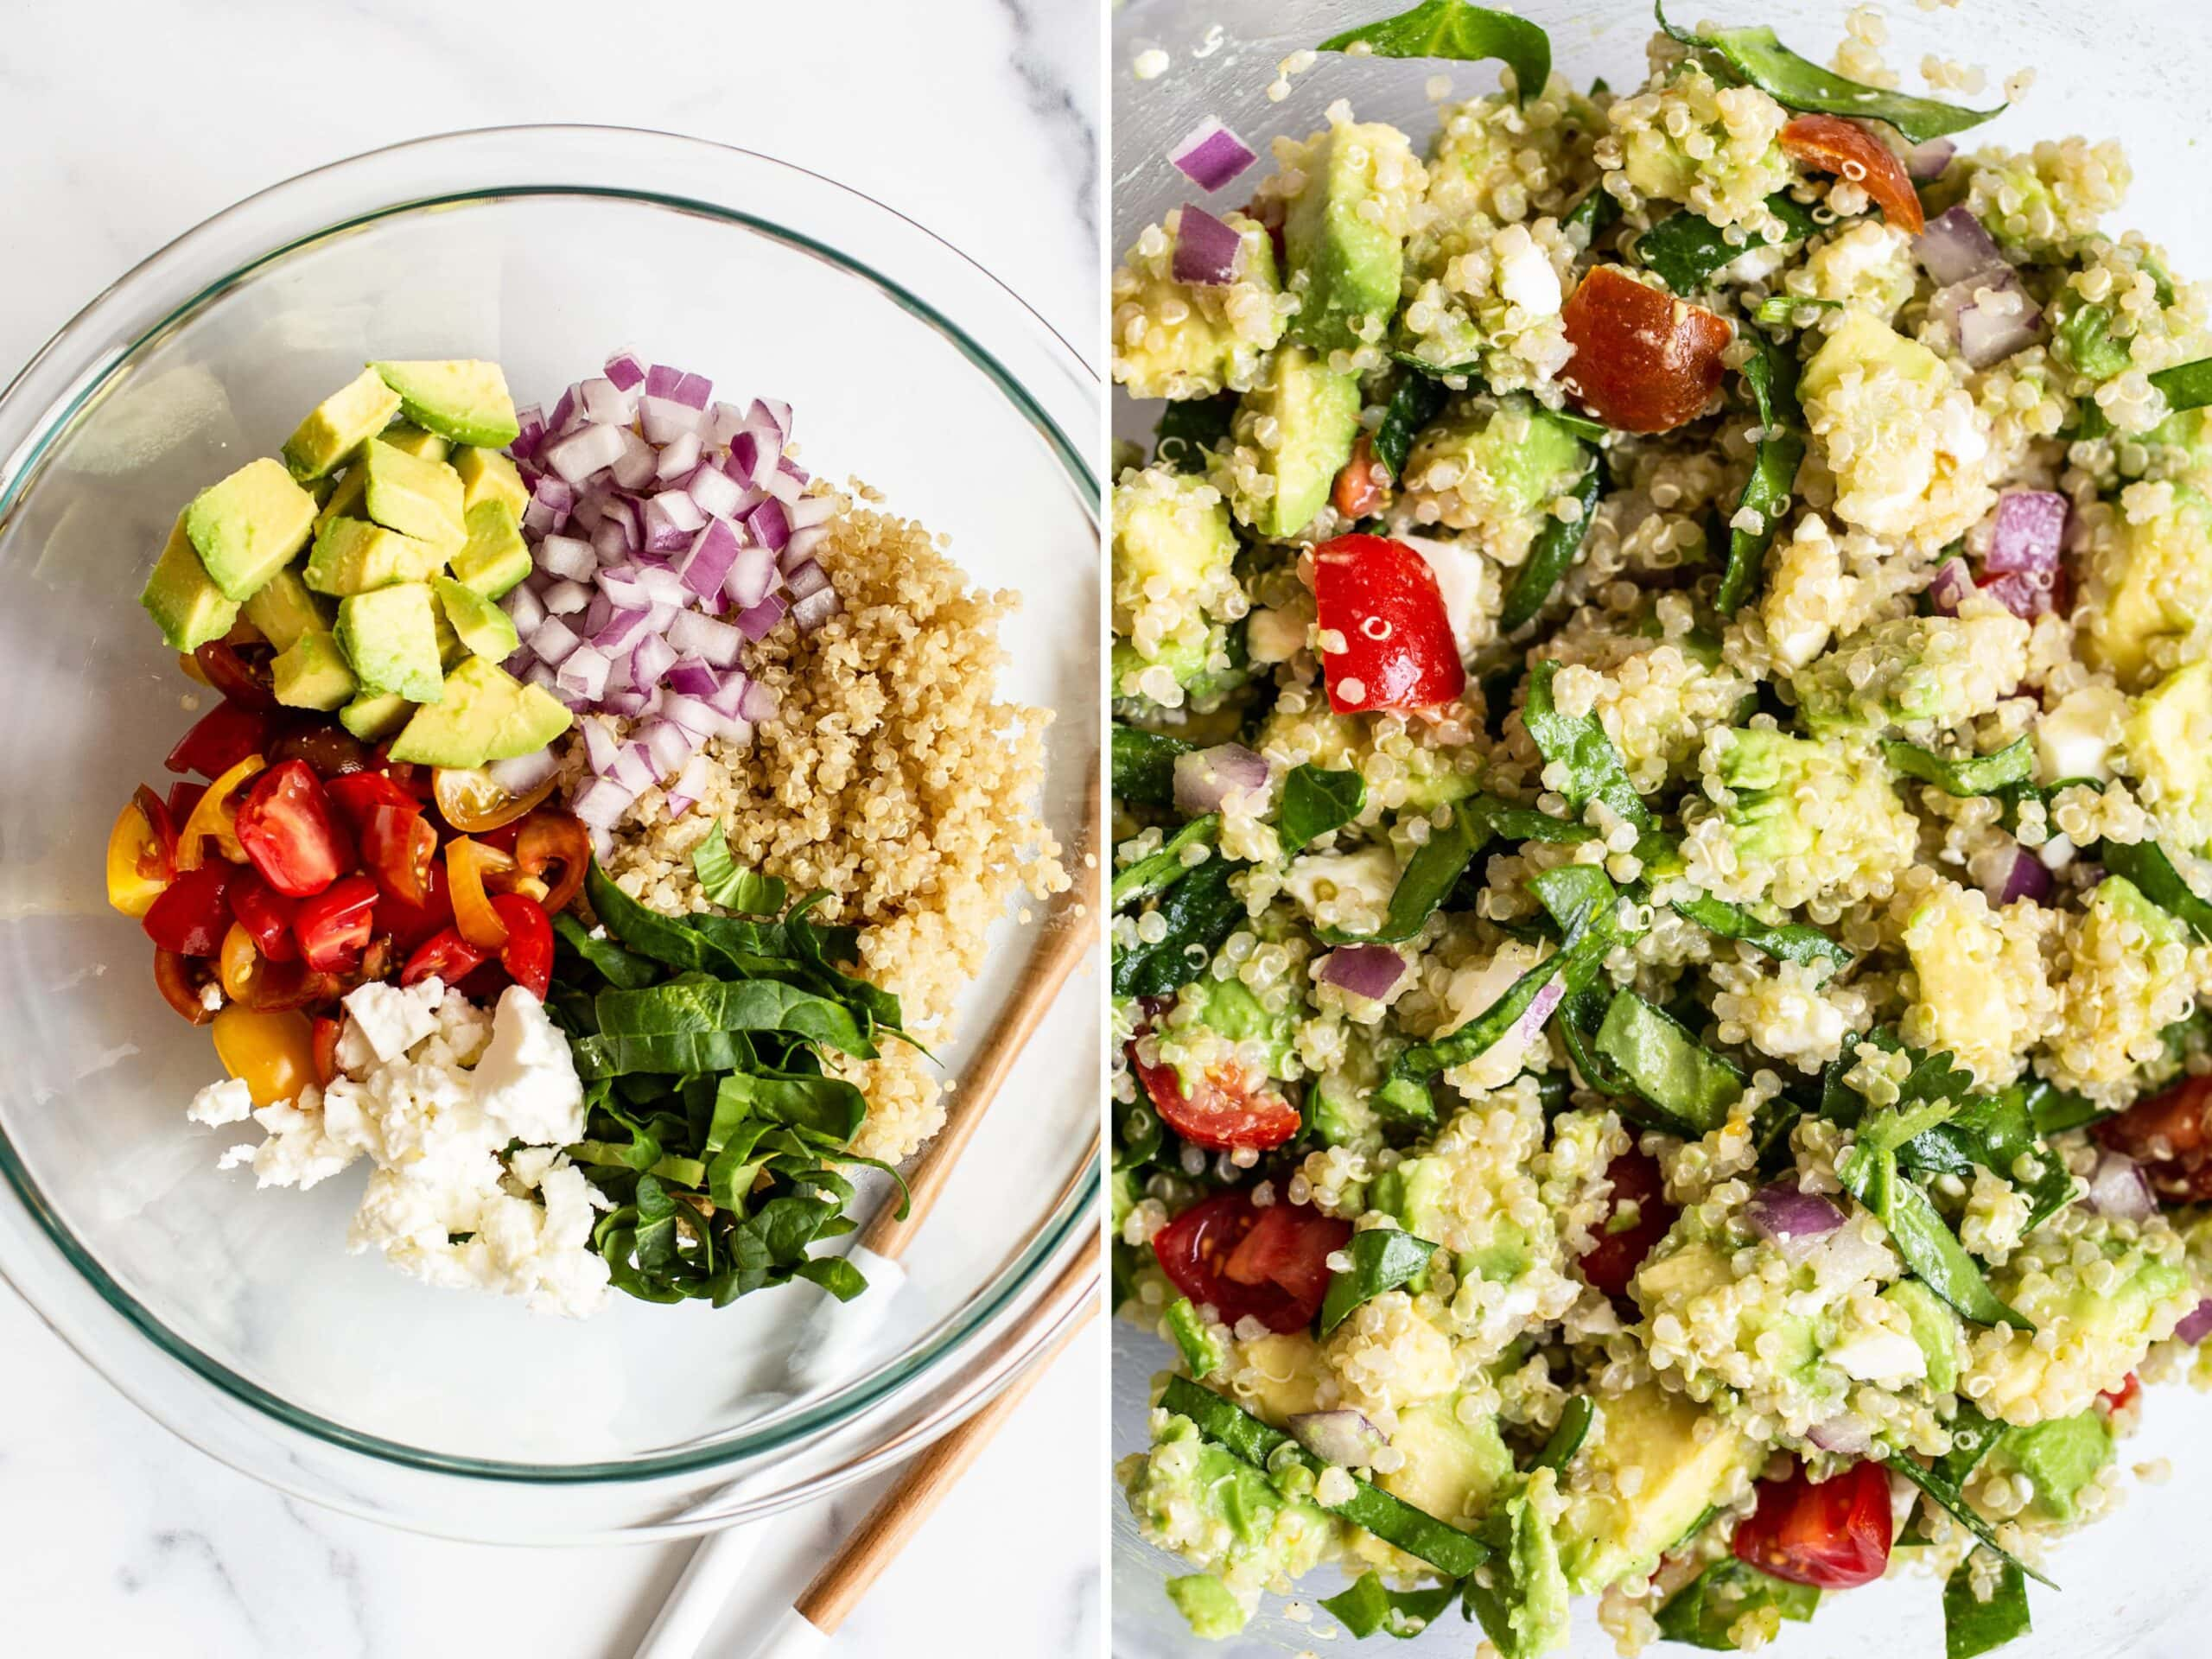 Side by side photos. First is a bowl of avocado, onion, quinoa, spinach, feta and tomatoes. The second photo is of all the quinoa salad ingredients tossed together in the bowl.